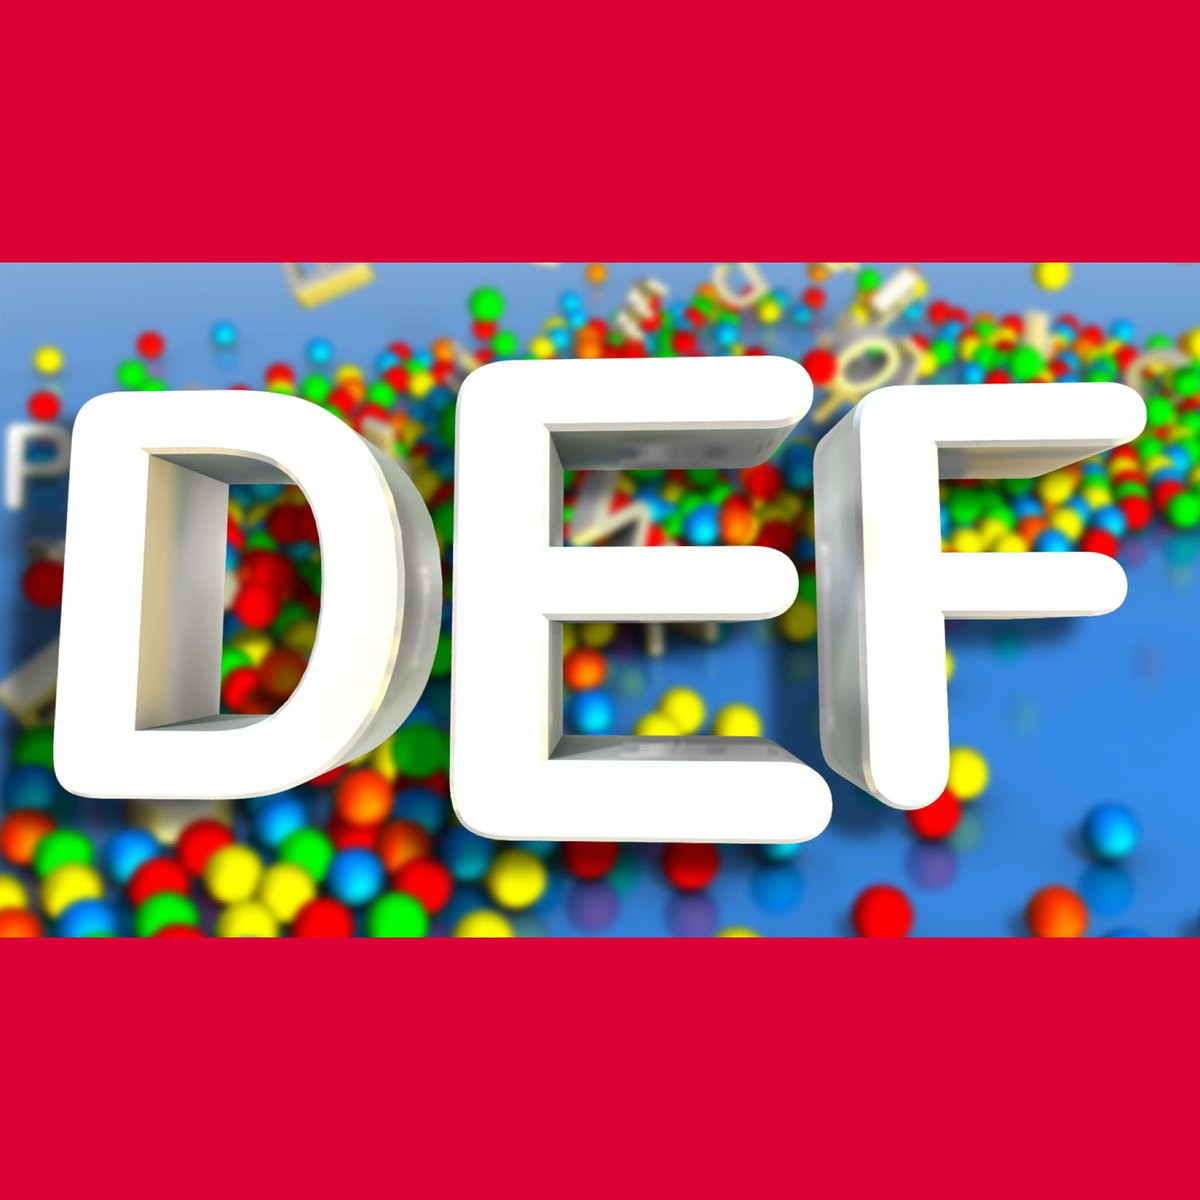 Back by popular demand, it's the alphabet, starring letters D, E and F!!   https://youtu.be/Y9ipQTrpy7o   #kidsvideos #abc #abcsong #alphabet  #abcdef #kidsyoutubechannel #kidspacestudios #kidspace